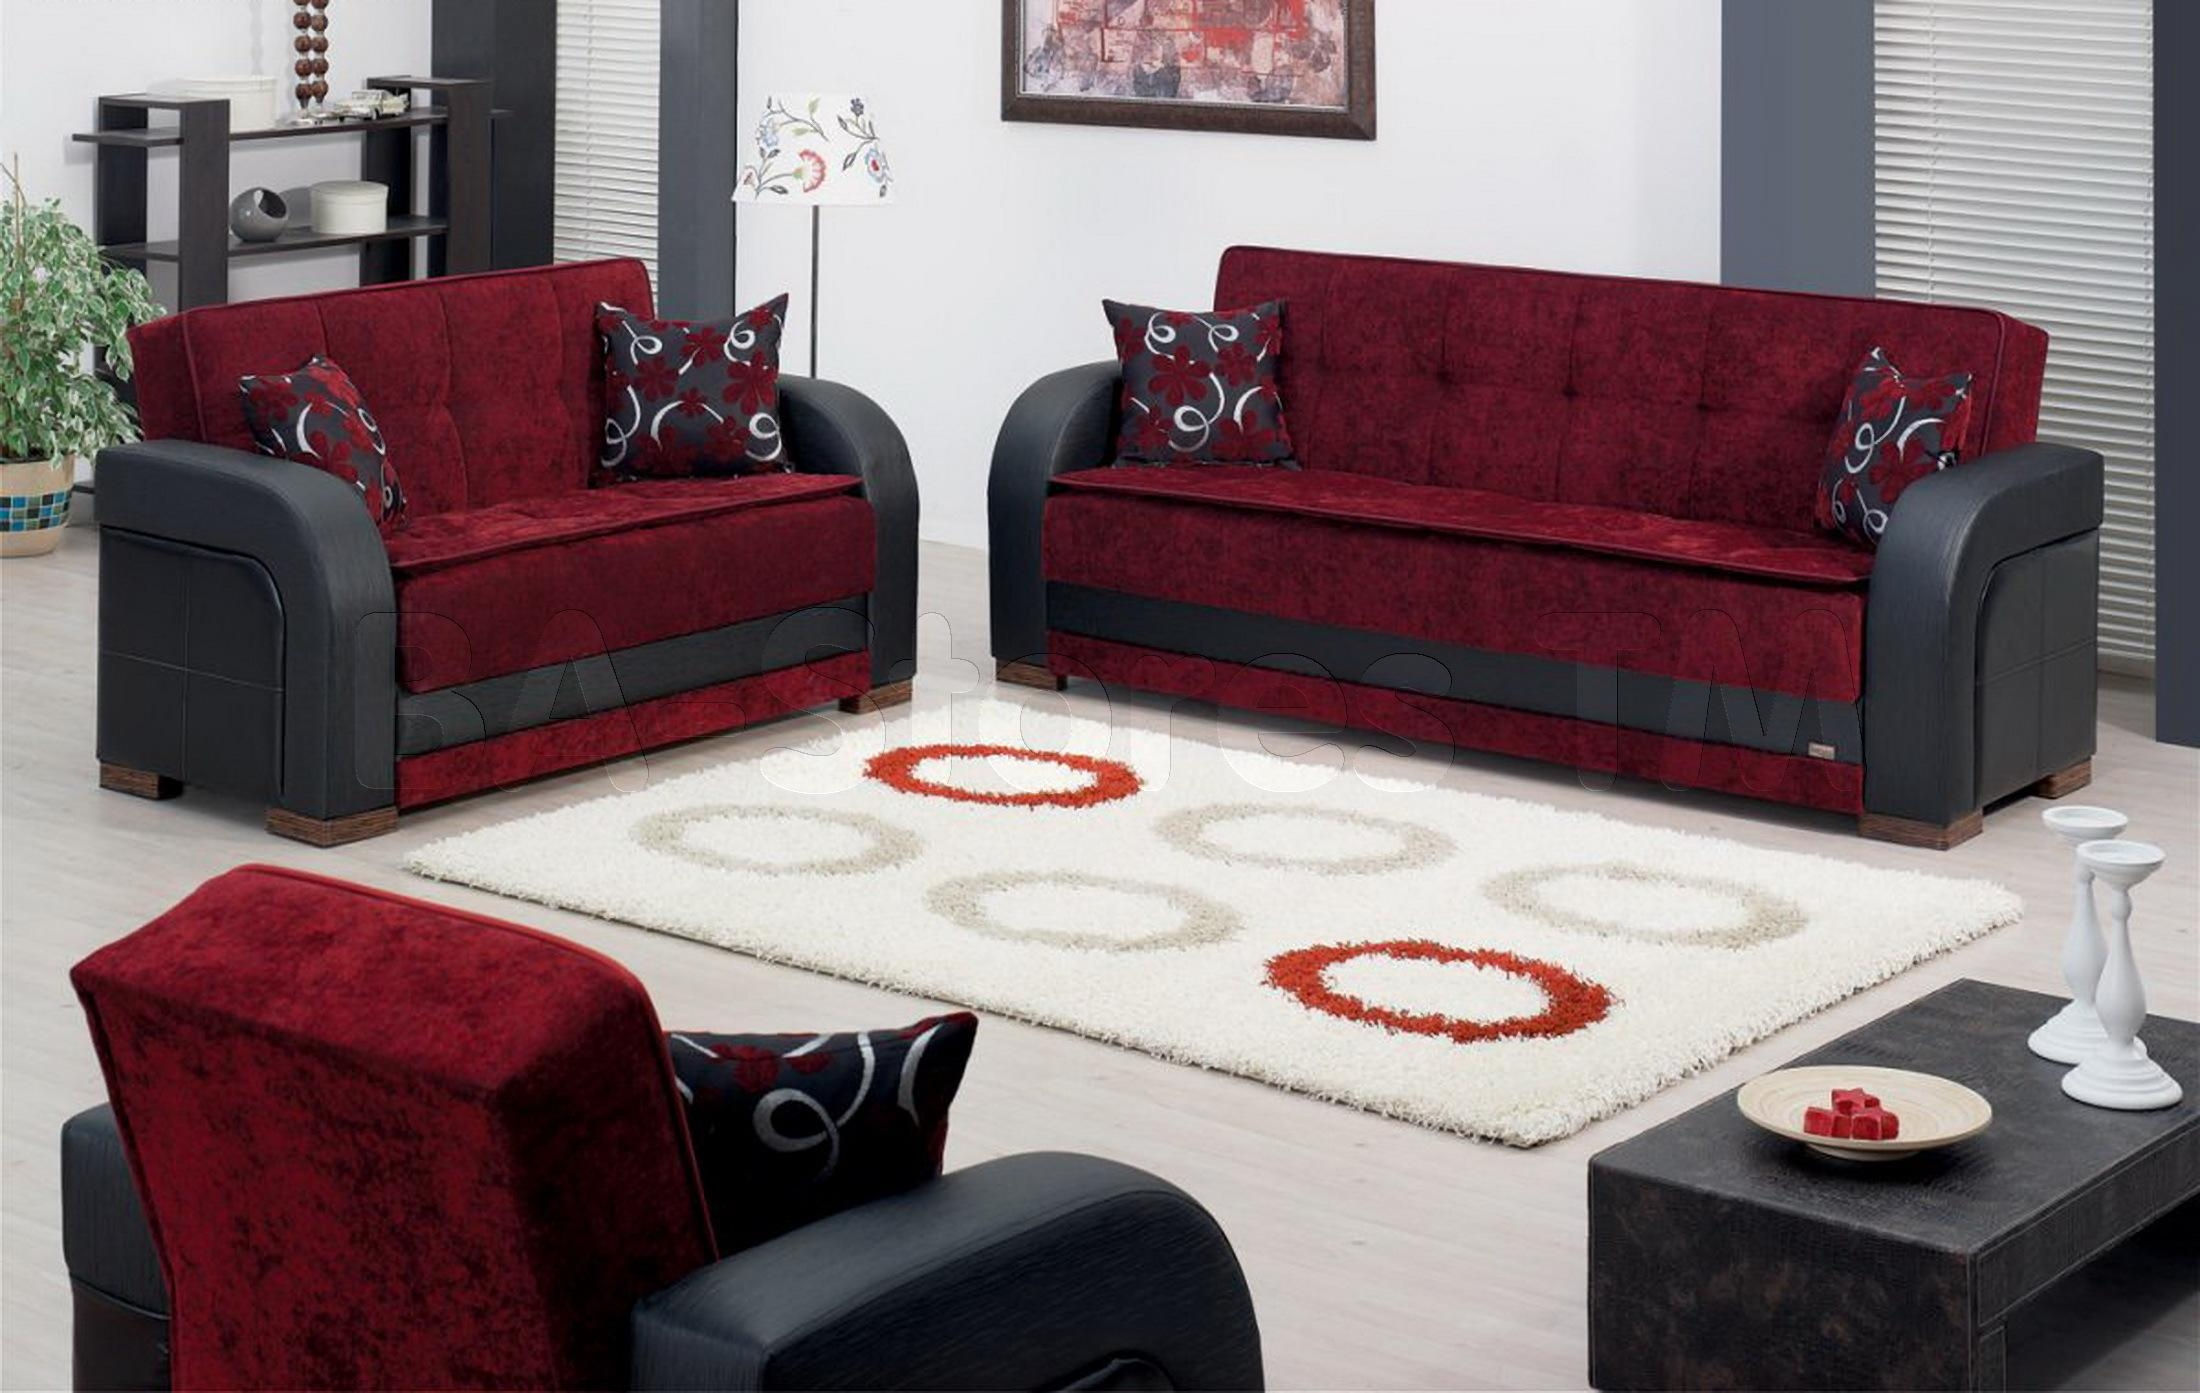 Furniture: Floral Sectional Sofa | Maroon Couches | Burgundy Sofa For Floral Sofas And Chairs (Image 12 of 20)